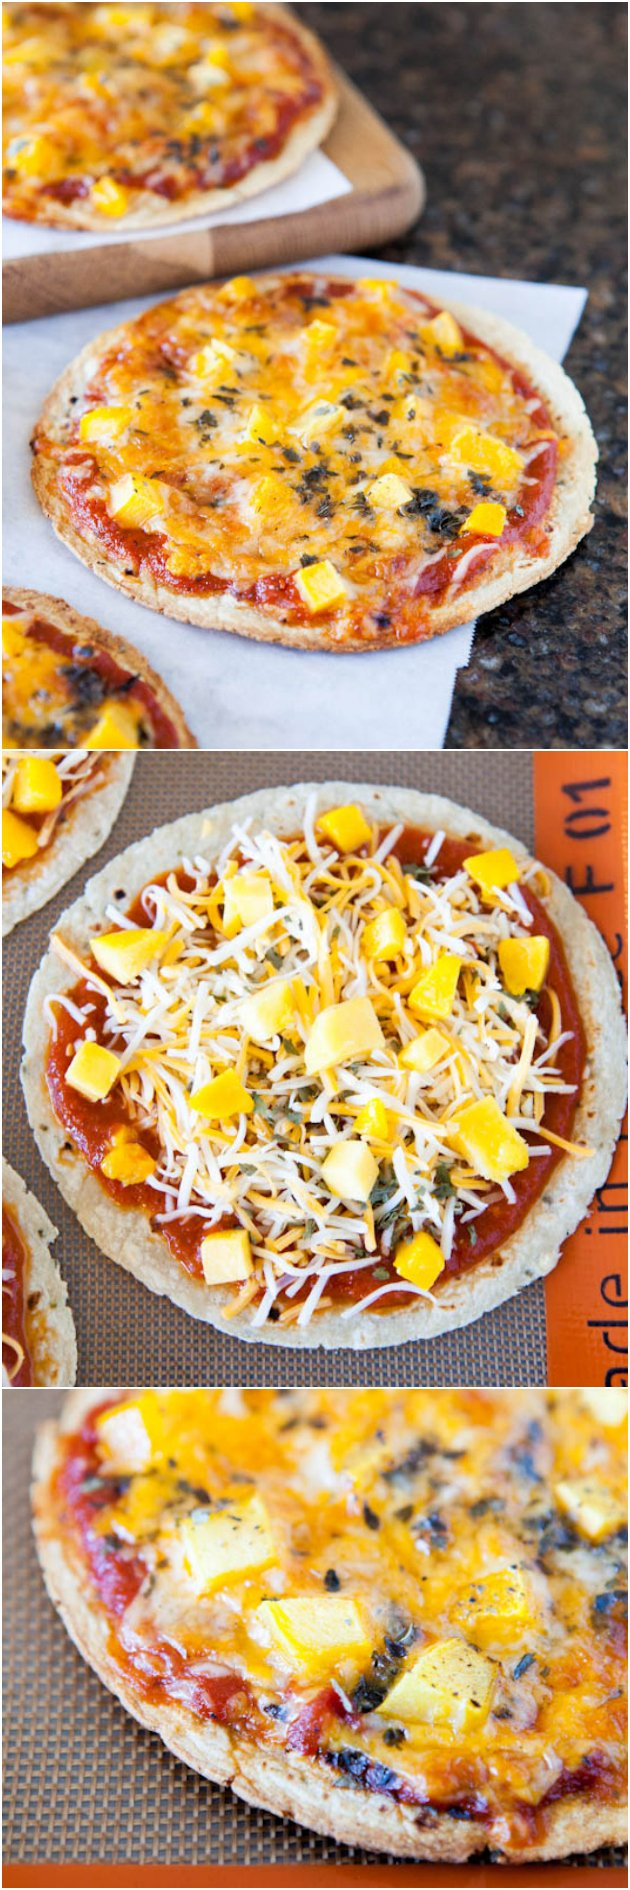 Mango Basil Personal-Sized Tortilla Pizzas - Pizzas made with a tortilla crust cook faster and are lighter to help you stay on track! Customize your pizza with your favorite toppings.